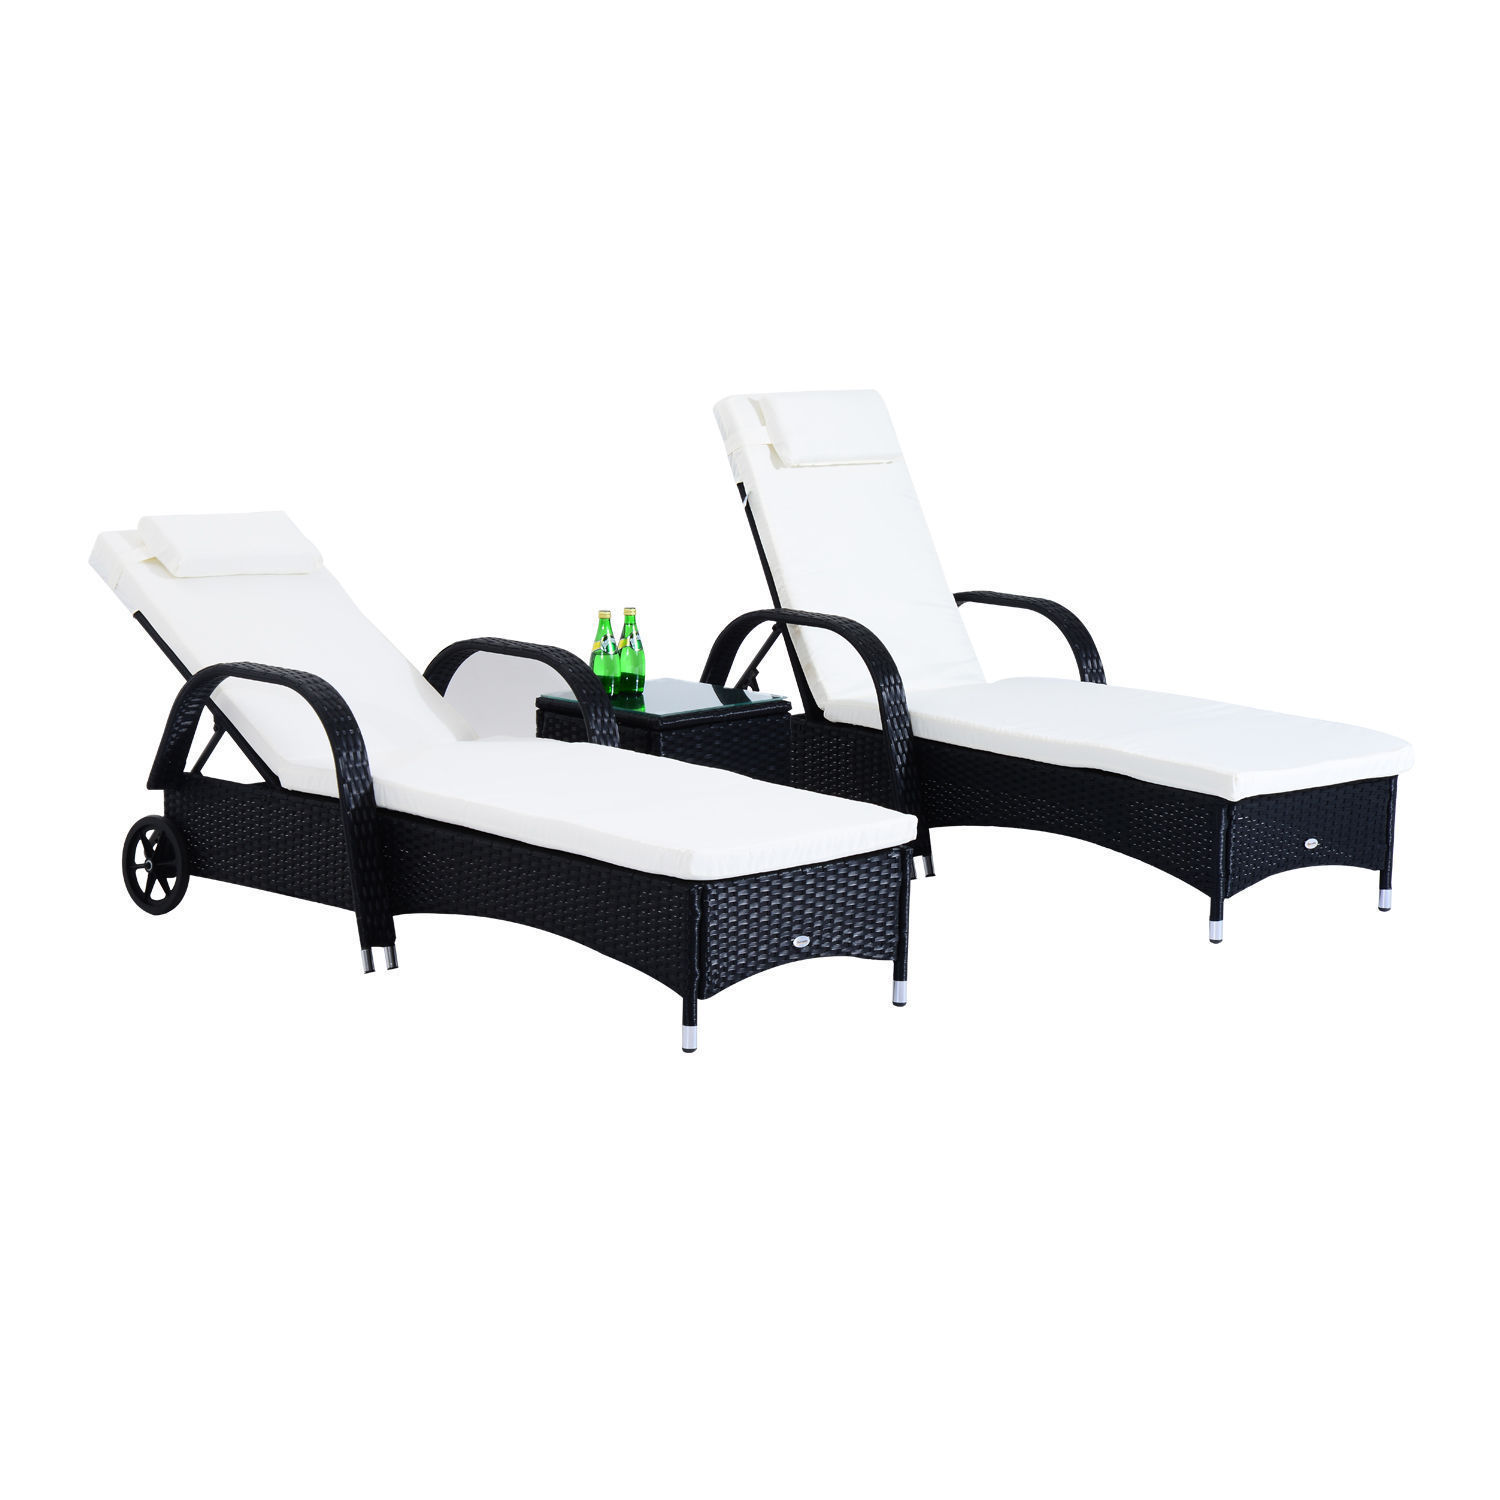 Outdoor 3pc Rattan Sun Lounger Adjustable Recliner Pool Deck Day Bed Table Black image 1